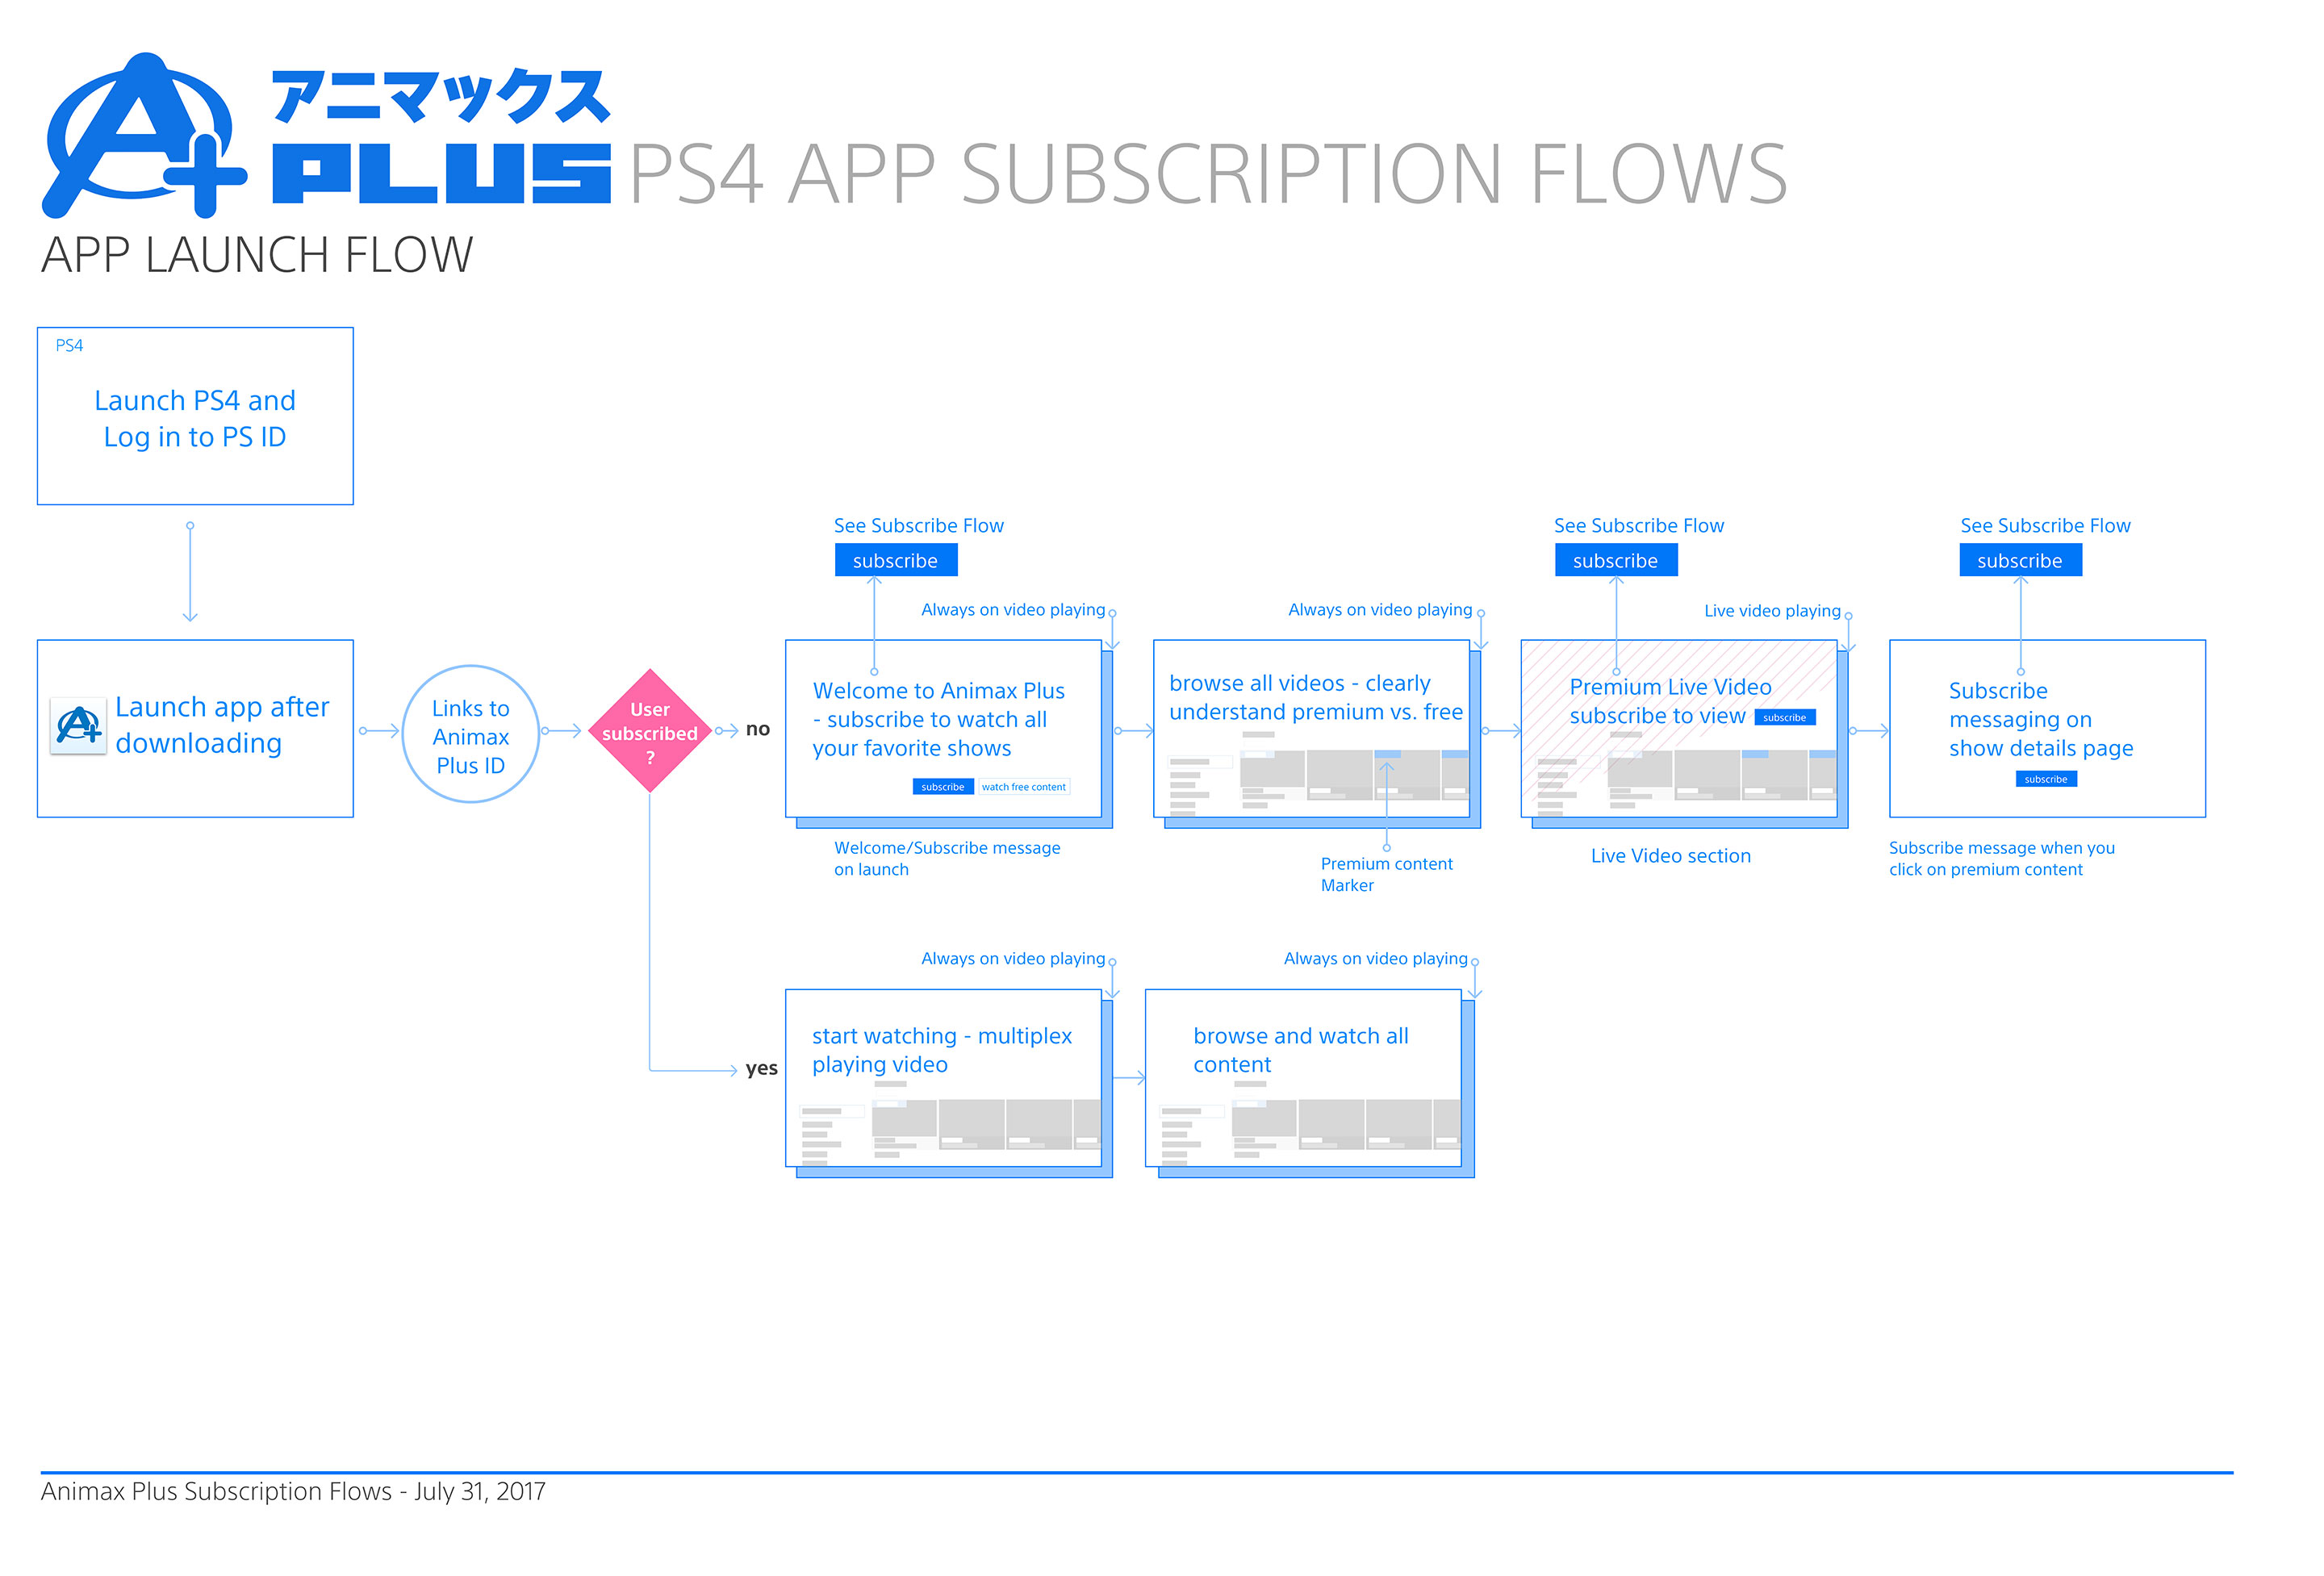 AAA_Animax_Subscription_Flow-1.jpg